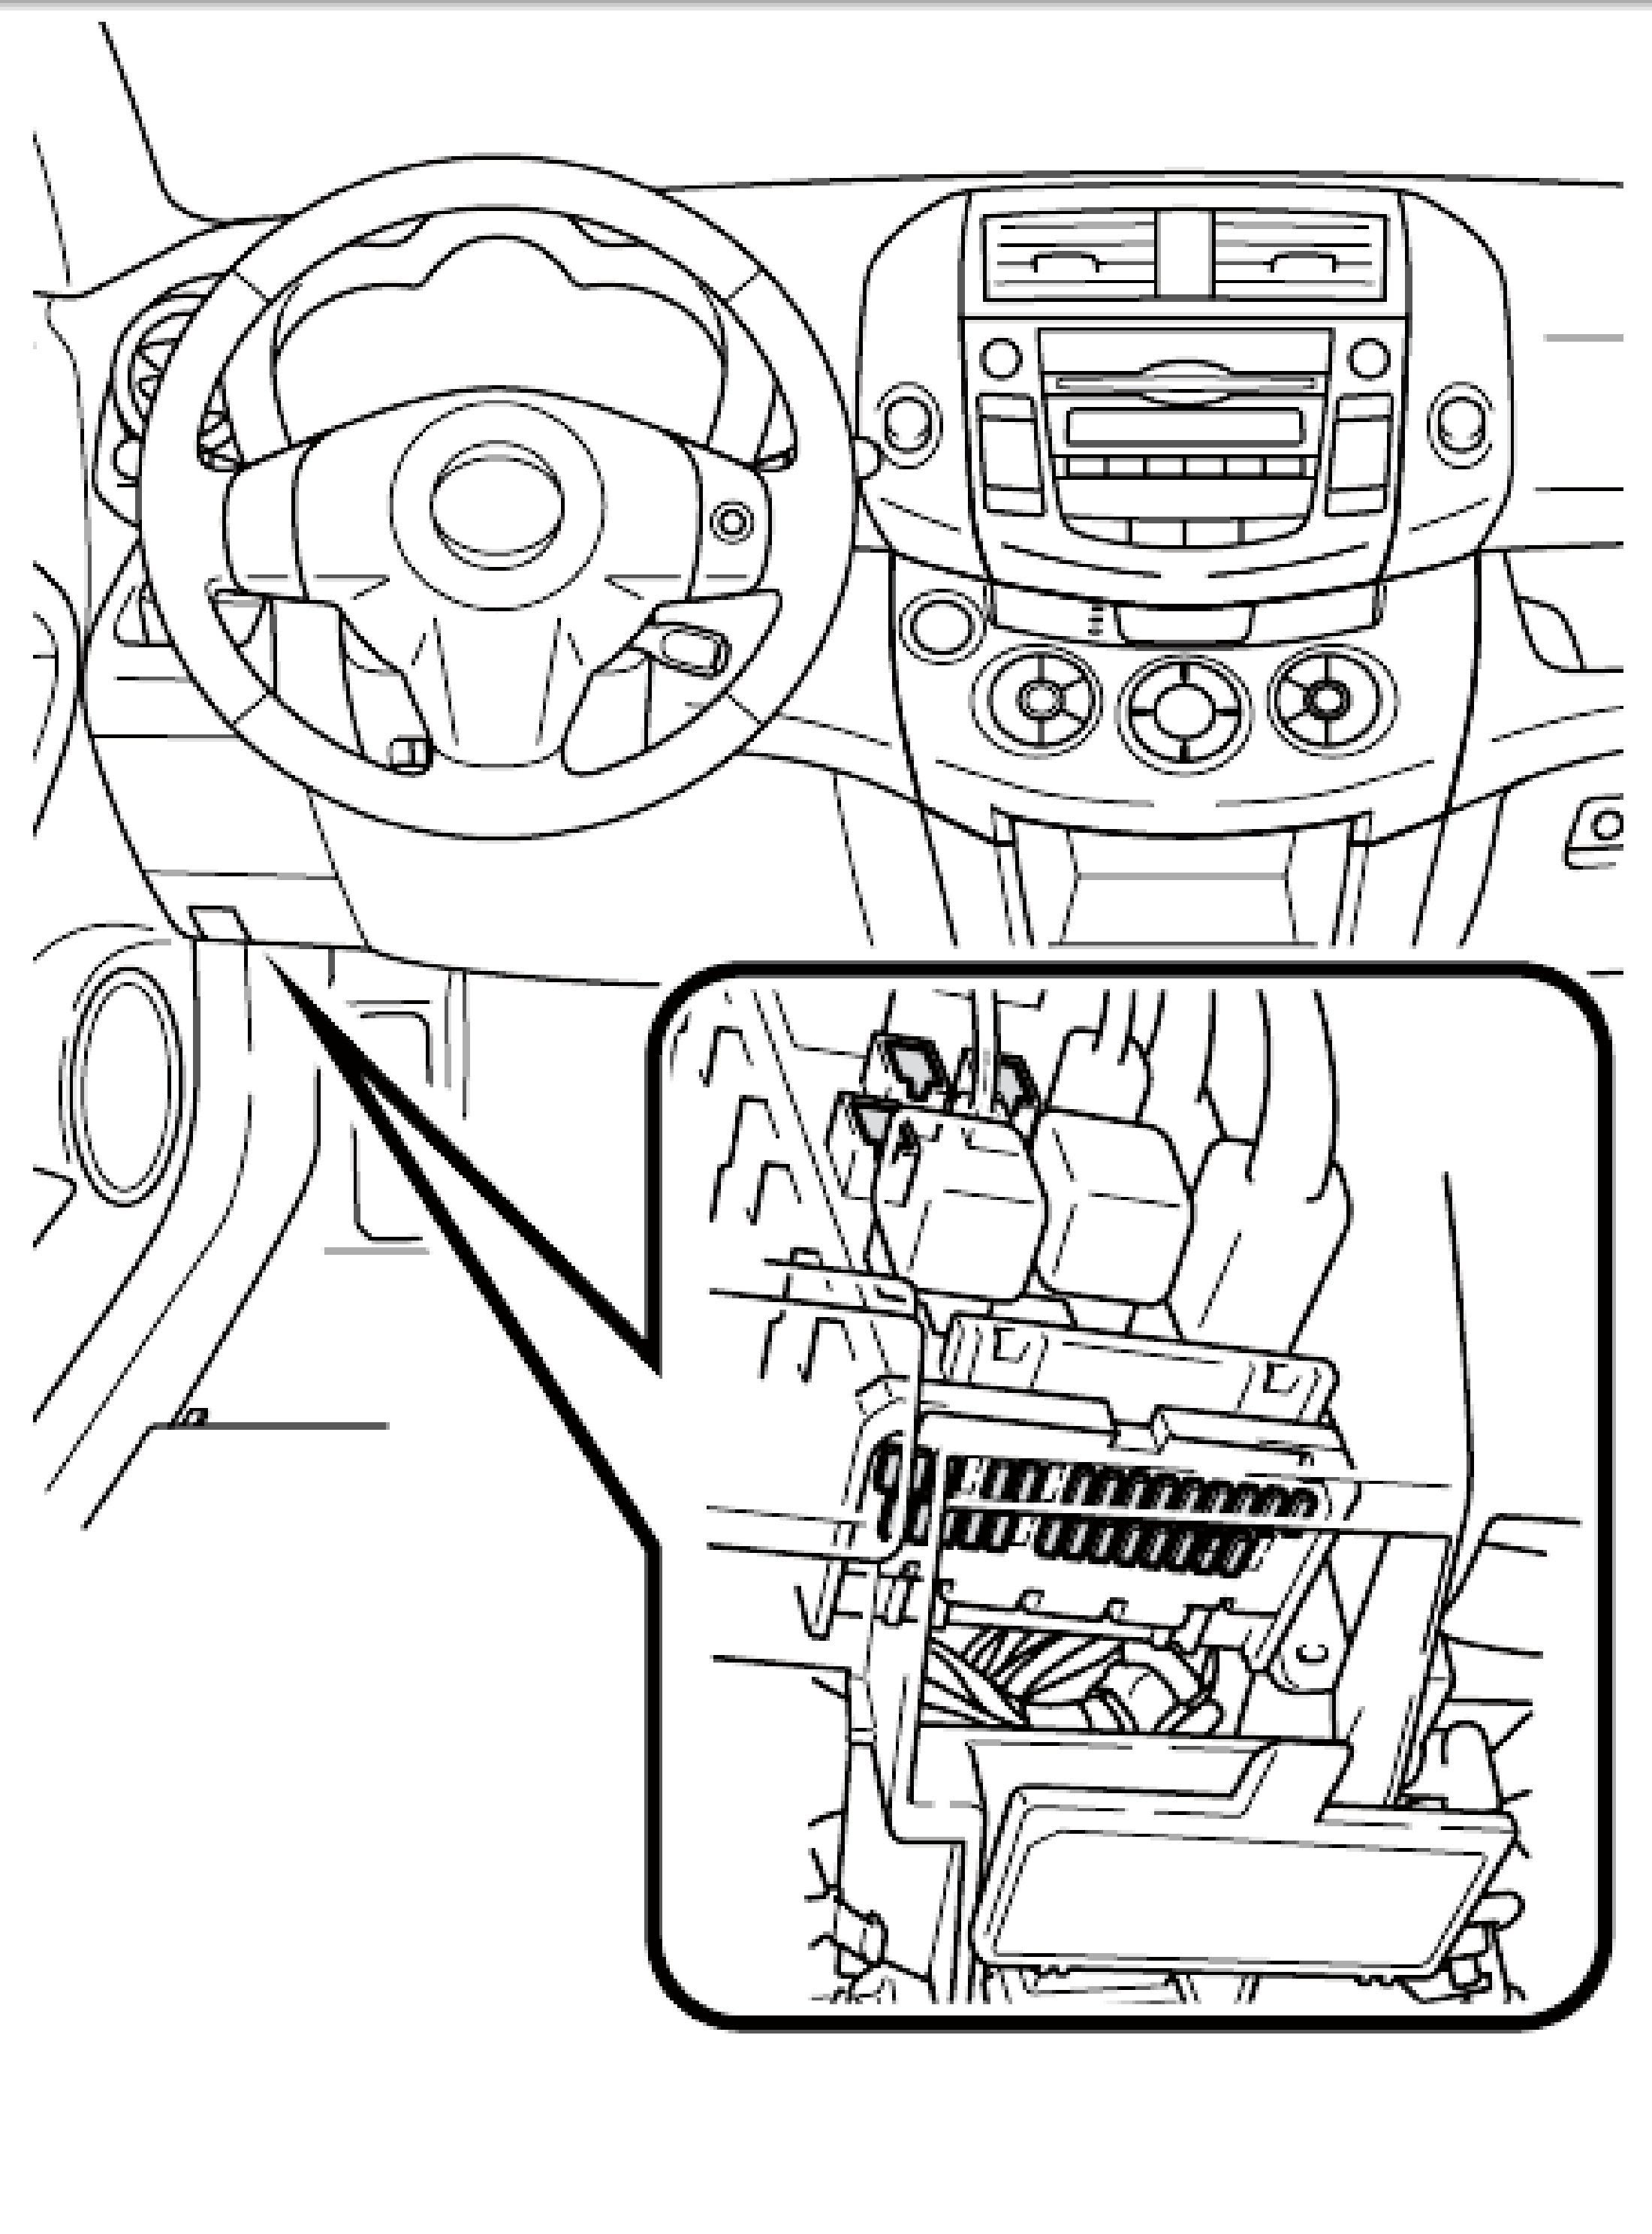 2006 Toyotum Corolla Fuse Box Location